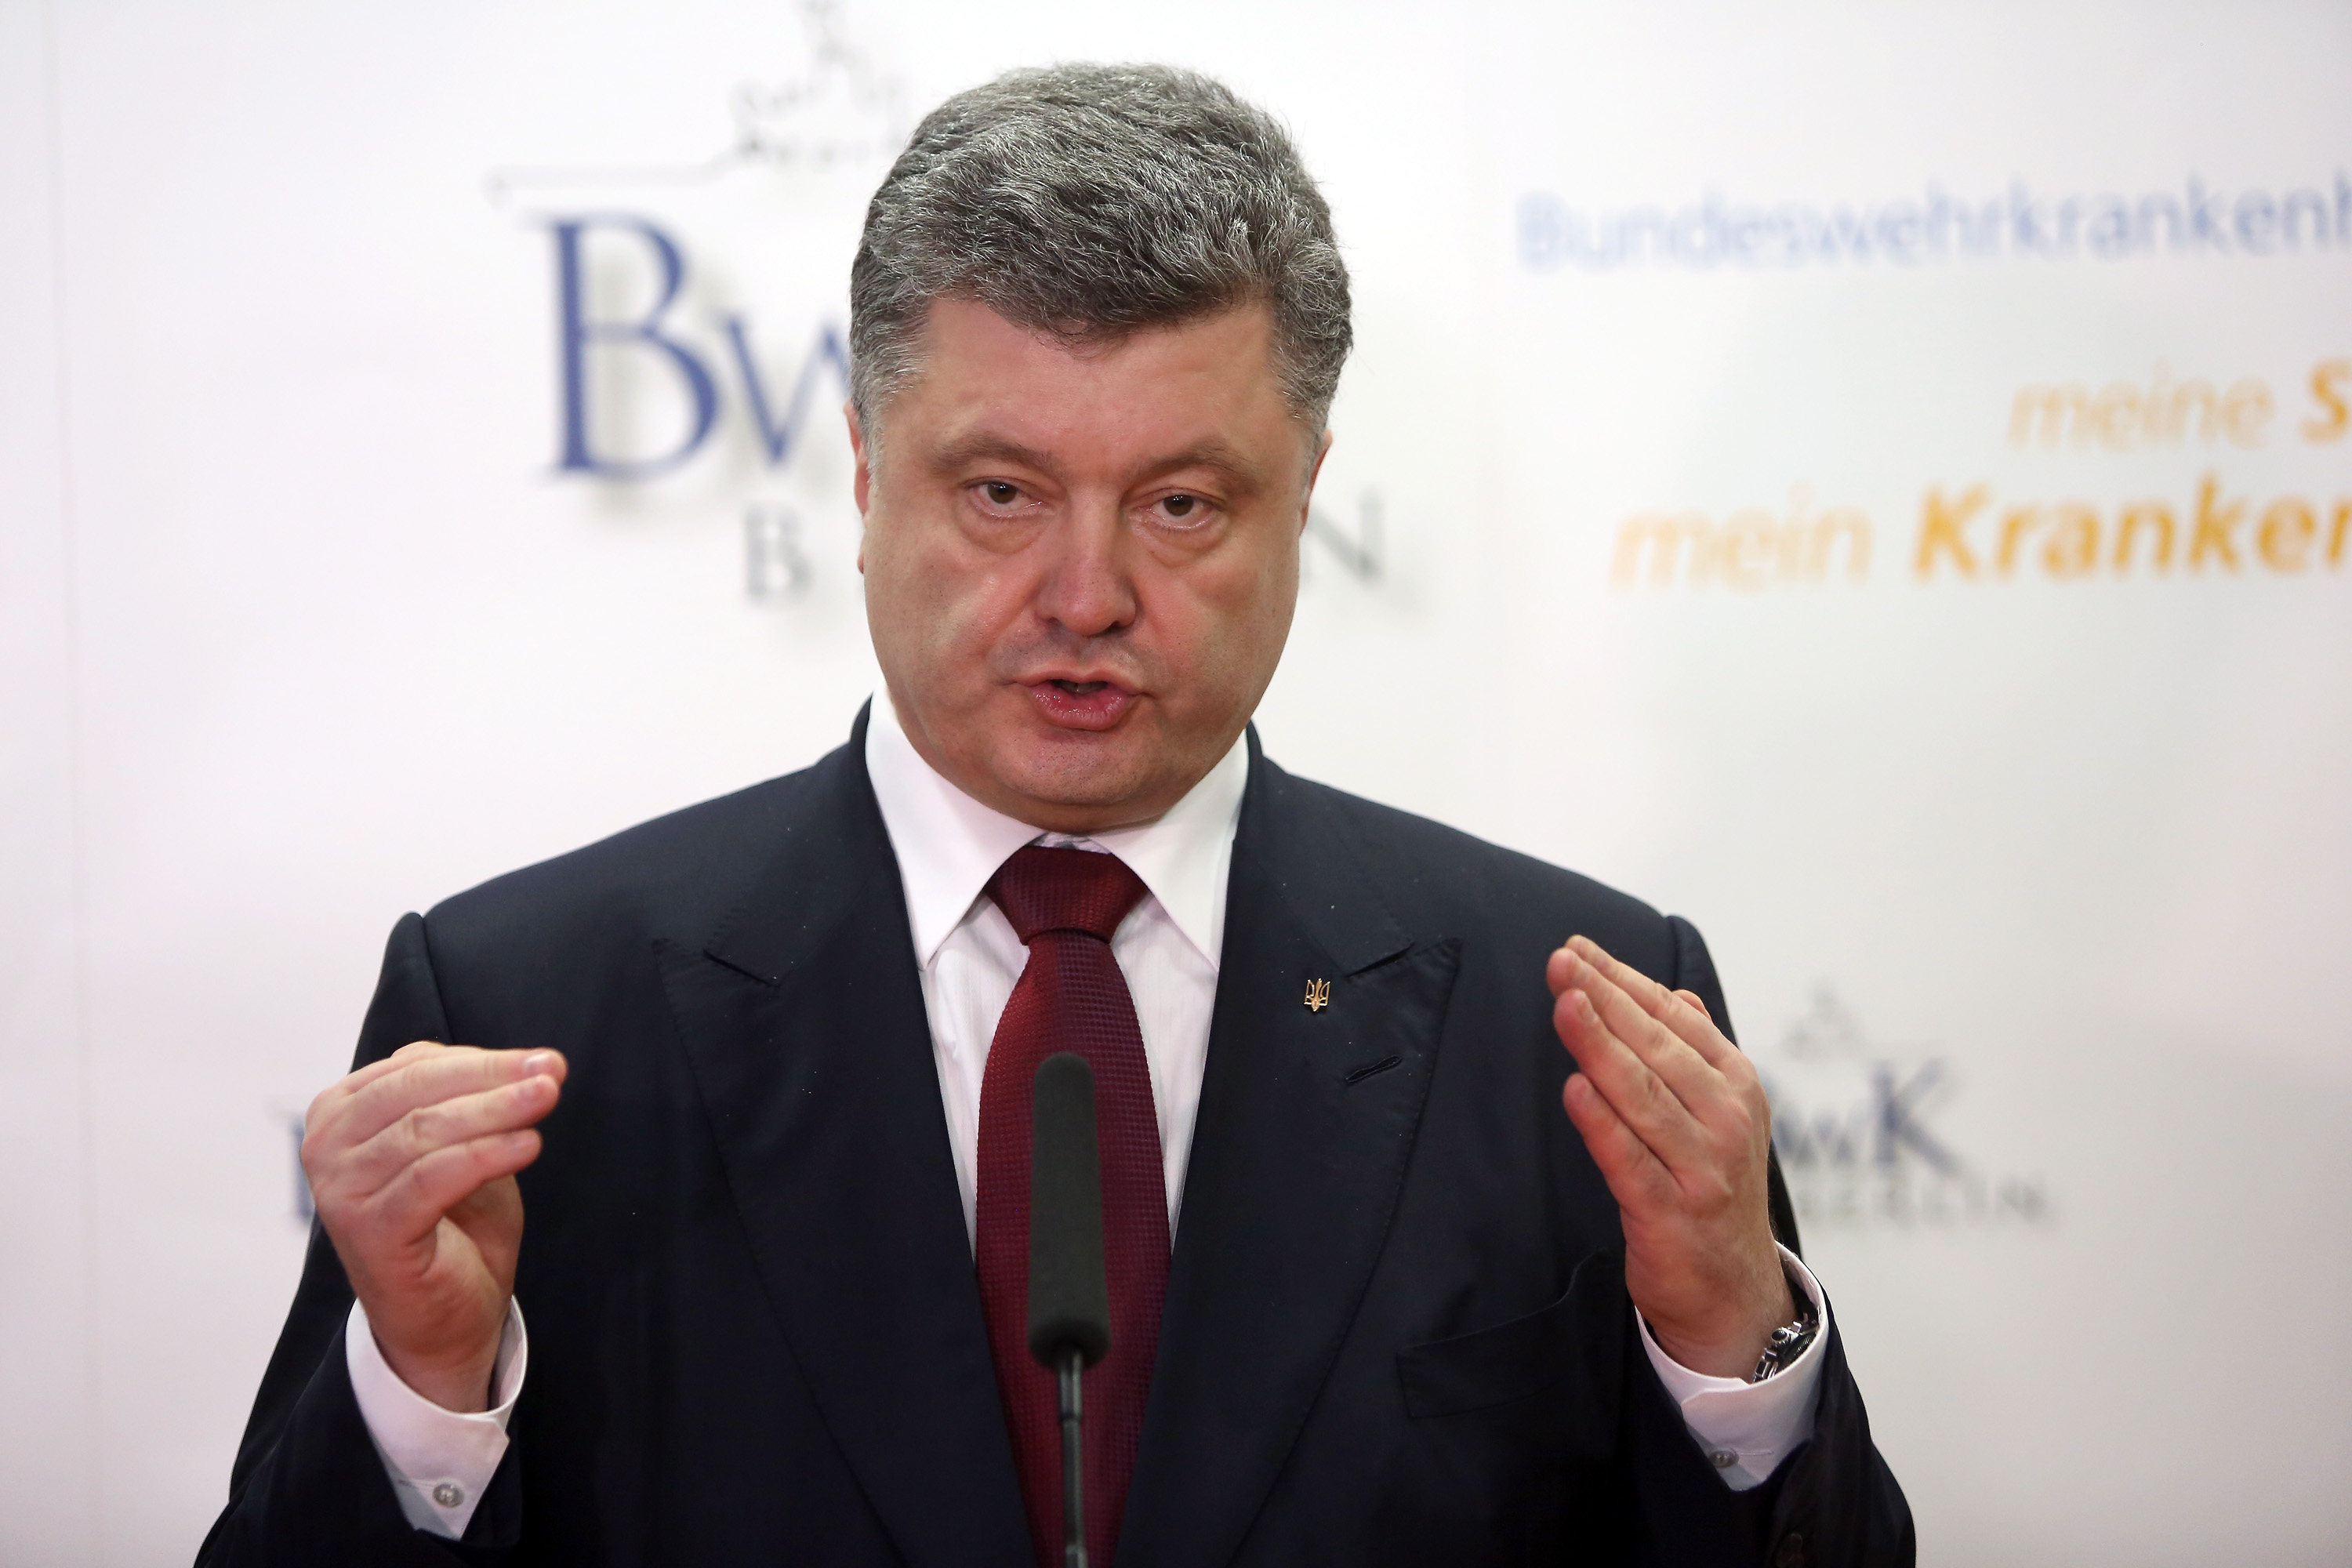 BERLIN, GERMANY - MARCH 16:  Ukrainian President Petro Poroshenko gives a statement to the press at the Bundeswehrkrankenhaus, a hospital in which German military, German government employees and ordinary civilians are treated, on March 16, 2015 in Berlin, Germany. Poroshenko was in Berlin for a meeting with German Chancellor Angela Merkel over the implementation of the Minsk ceasefire agreement as well as further reforms to help stabilize the troubled country. The conflict between Russian-backed separatists and government troops that began in Ukraine last year has claimed over 6,000 lives and displaced nearly 1.8 million people, according to the human rights office of the United Nations. The German military has been active in assisting those injured in the ongoing dispute in the region, treating the country's own soldiers sent to Germany for medical aid, and has provided non-lethal military equipment such as protective vests. Poroshenko is expected to request more such assistance during his visit to the country.  (Photo by Adam Berry/Getty Images)